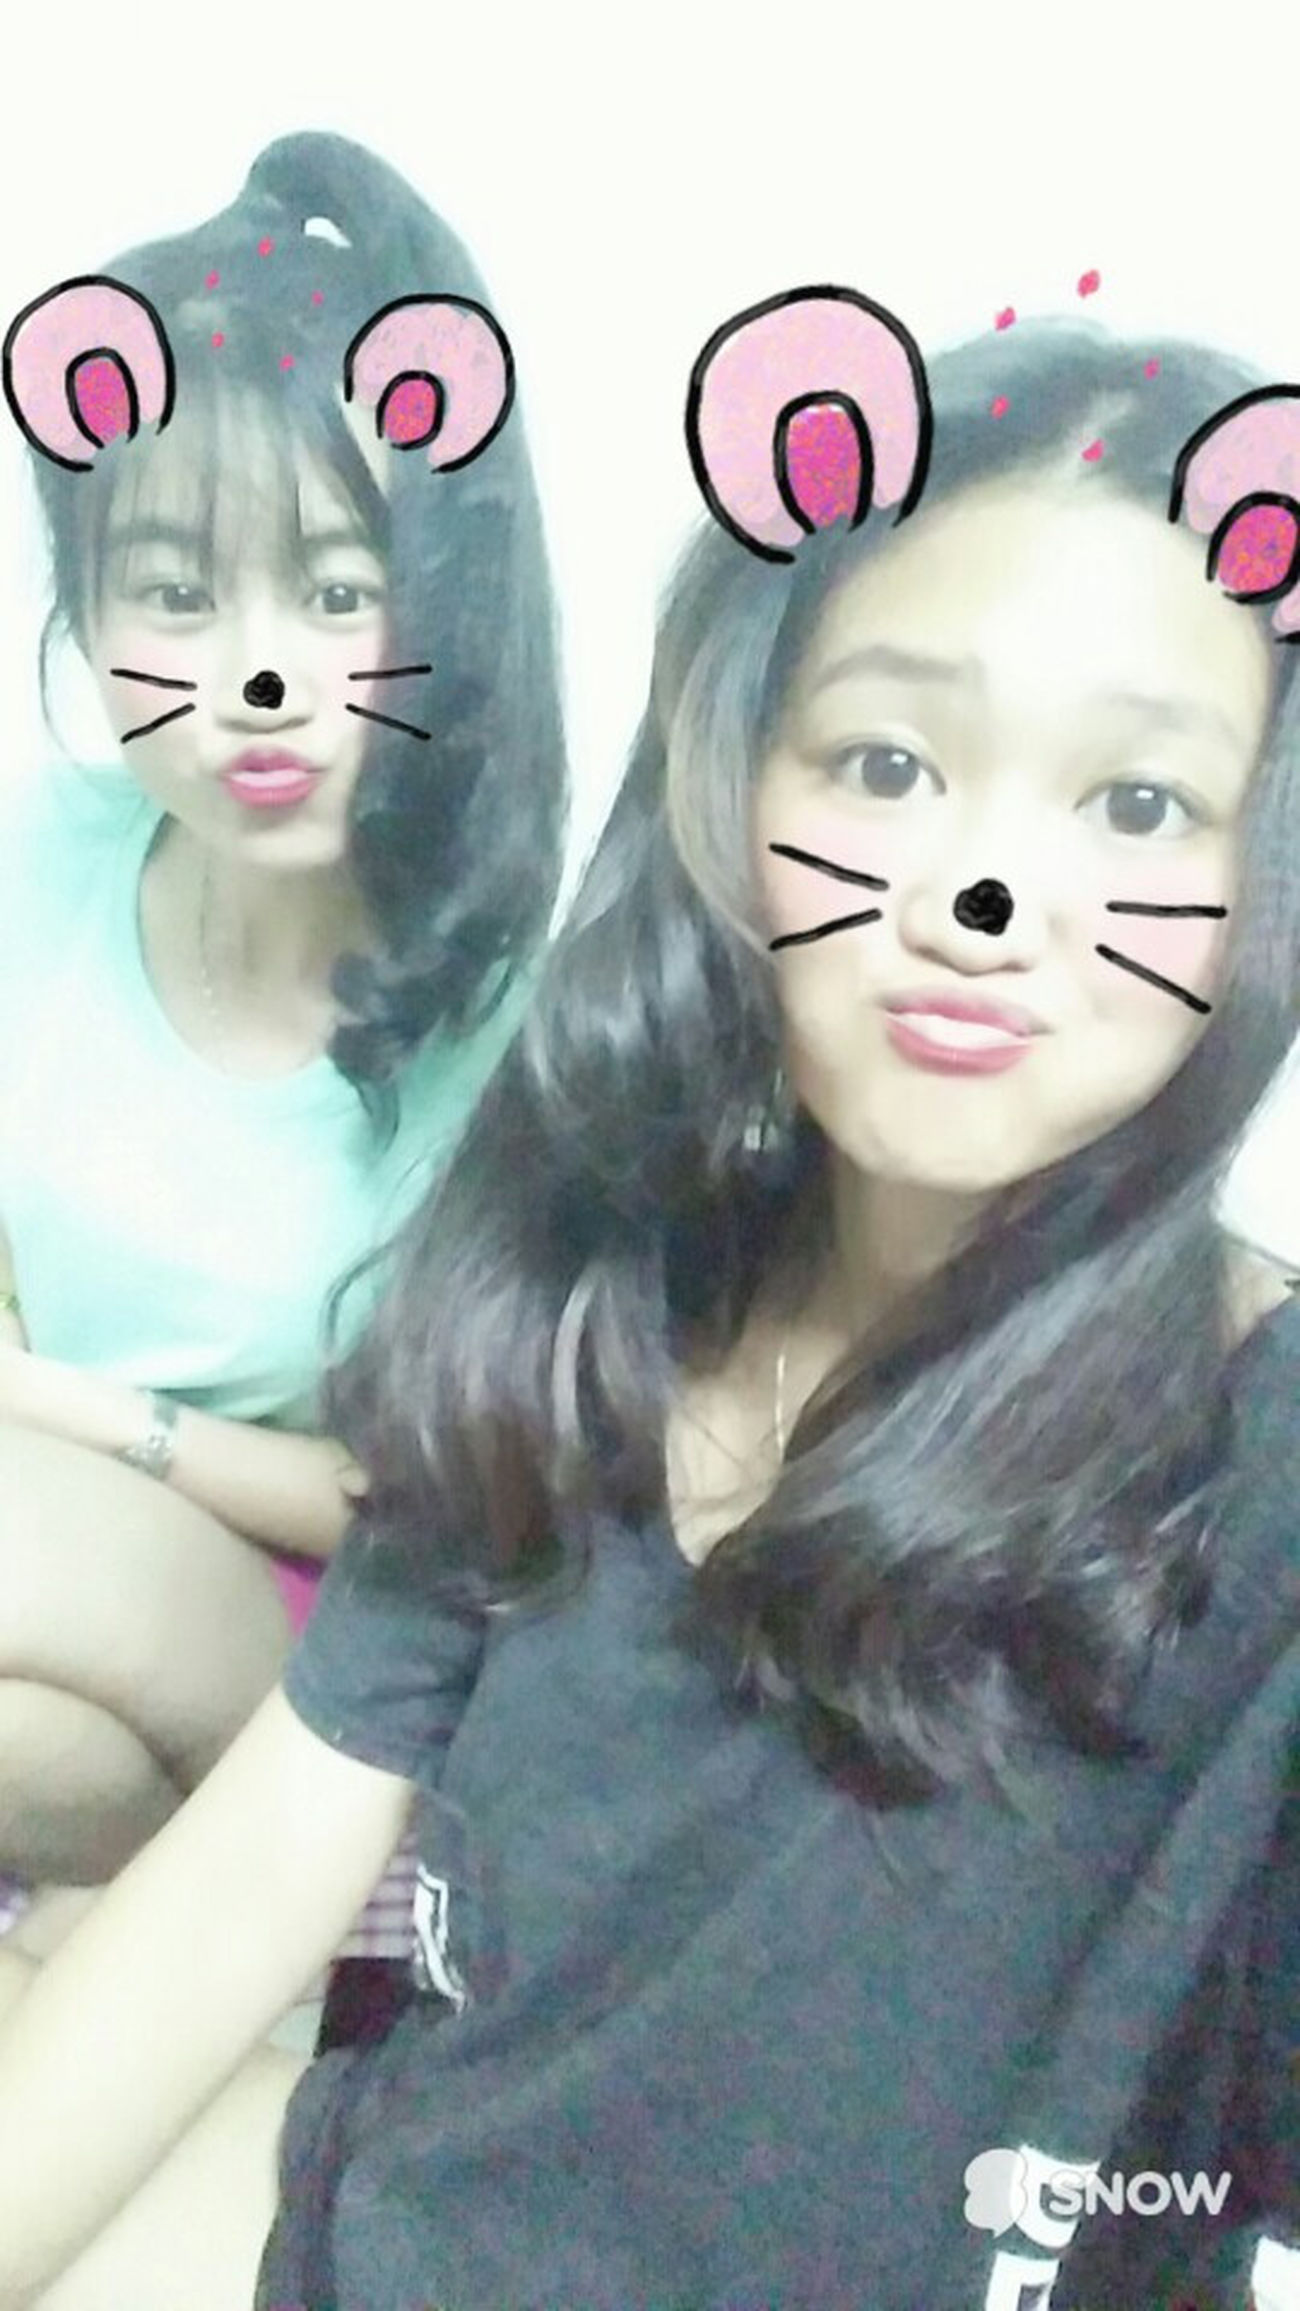 Made By Sister Girl Be Strong Girl 加油 Chaiyo Blue Eyes Glass New Hair Khitoi18 18 Piaoliang Vietnamese Hớn Ha Hớn Hở 很可爱 Selfie ✌ Snow Hihi Natural Beauty Mouse Smile Night Beautiful Cute Sister Girls